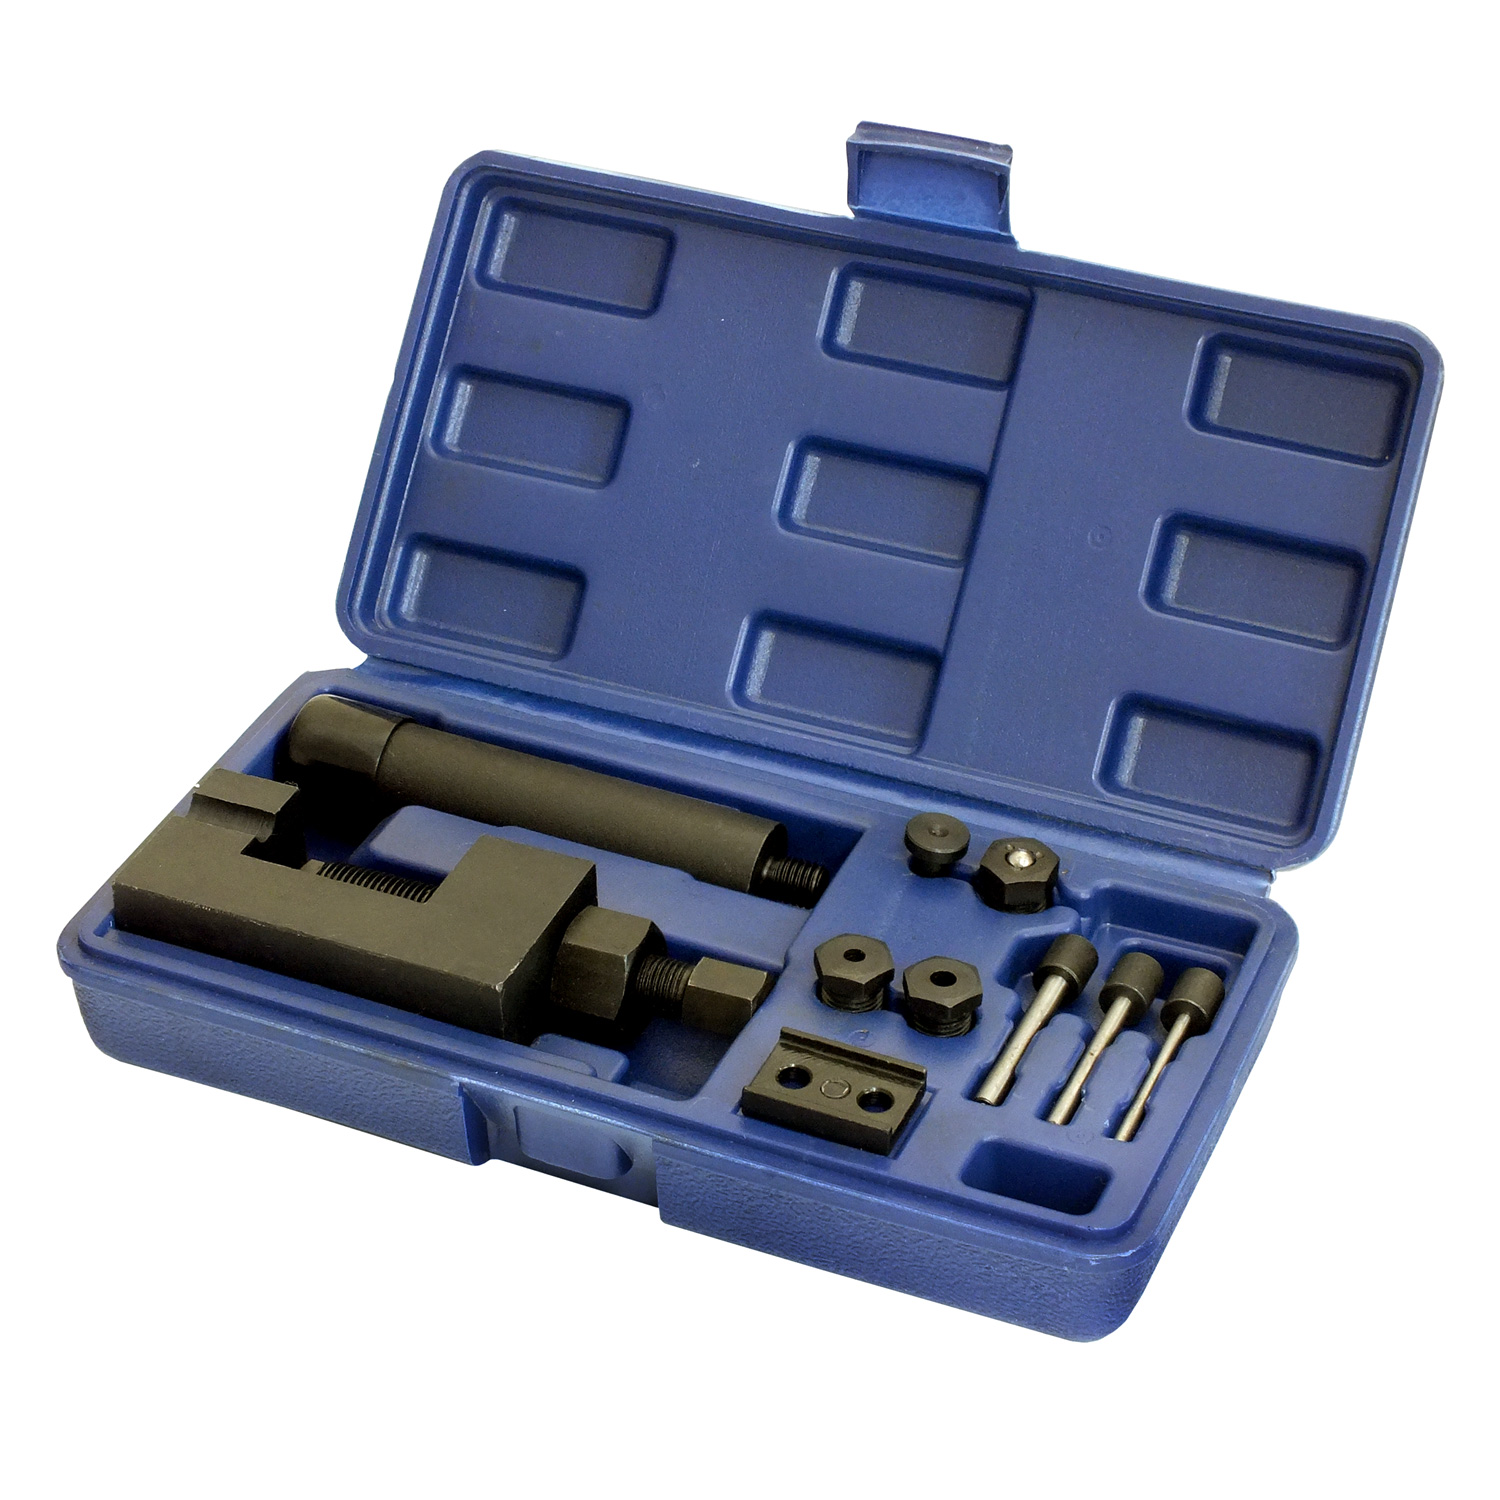 Harbor Freight Rivet Tool : Chain rivet tool harbor freight pictures to pin on